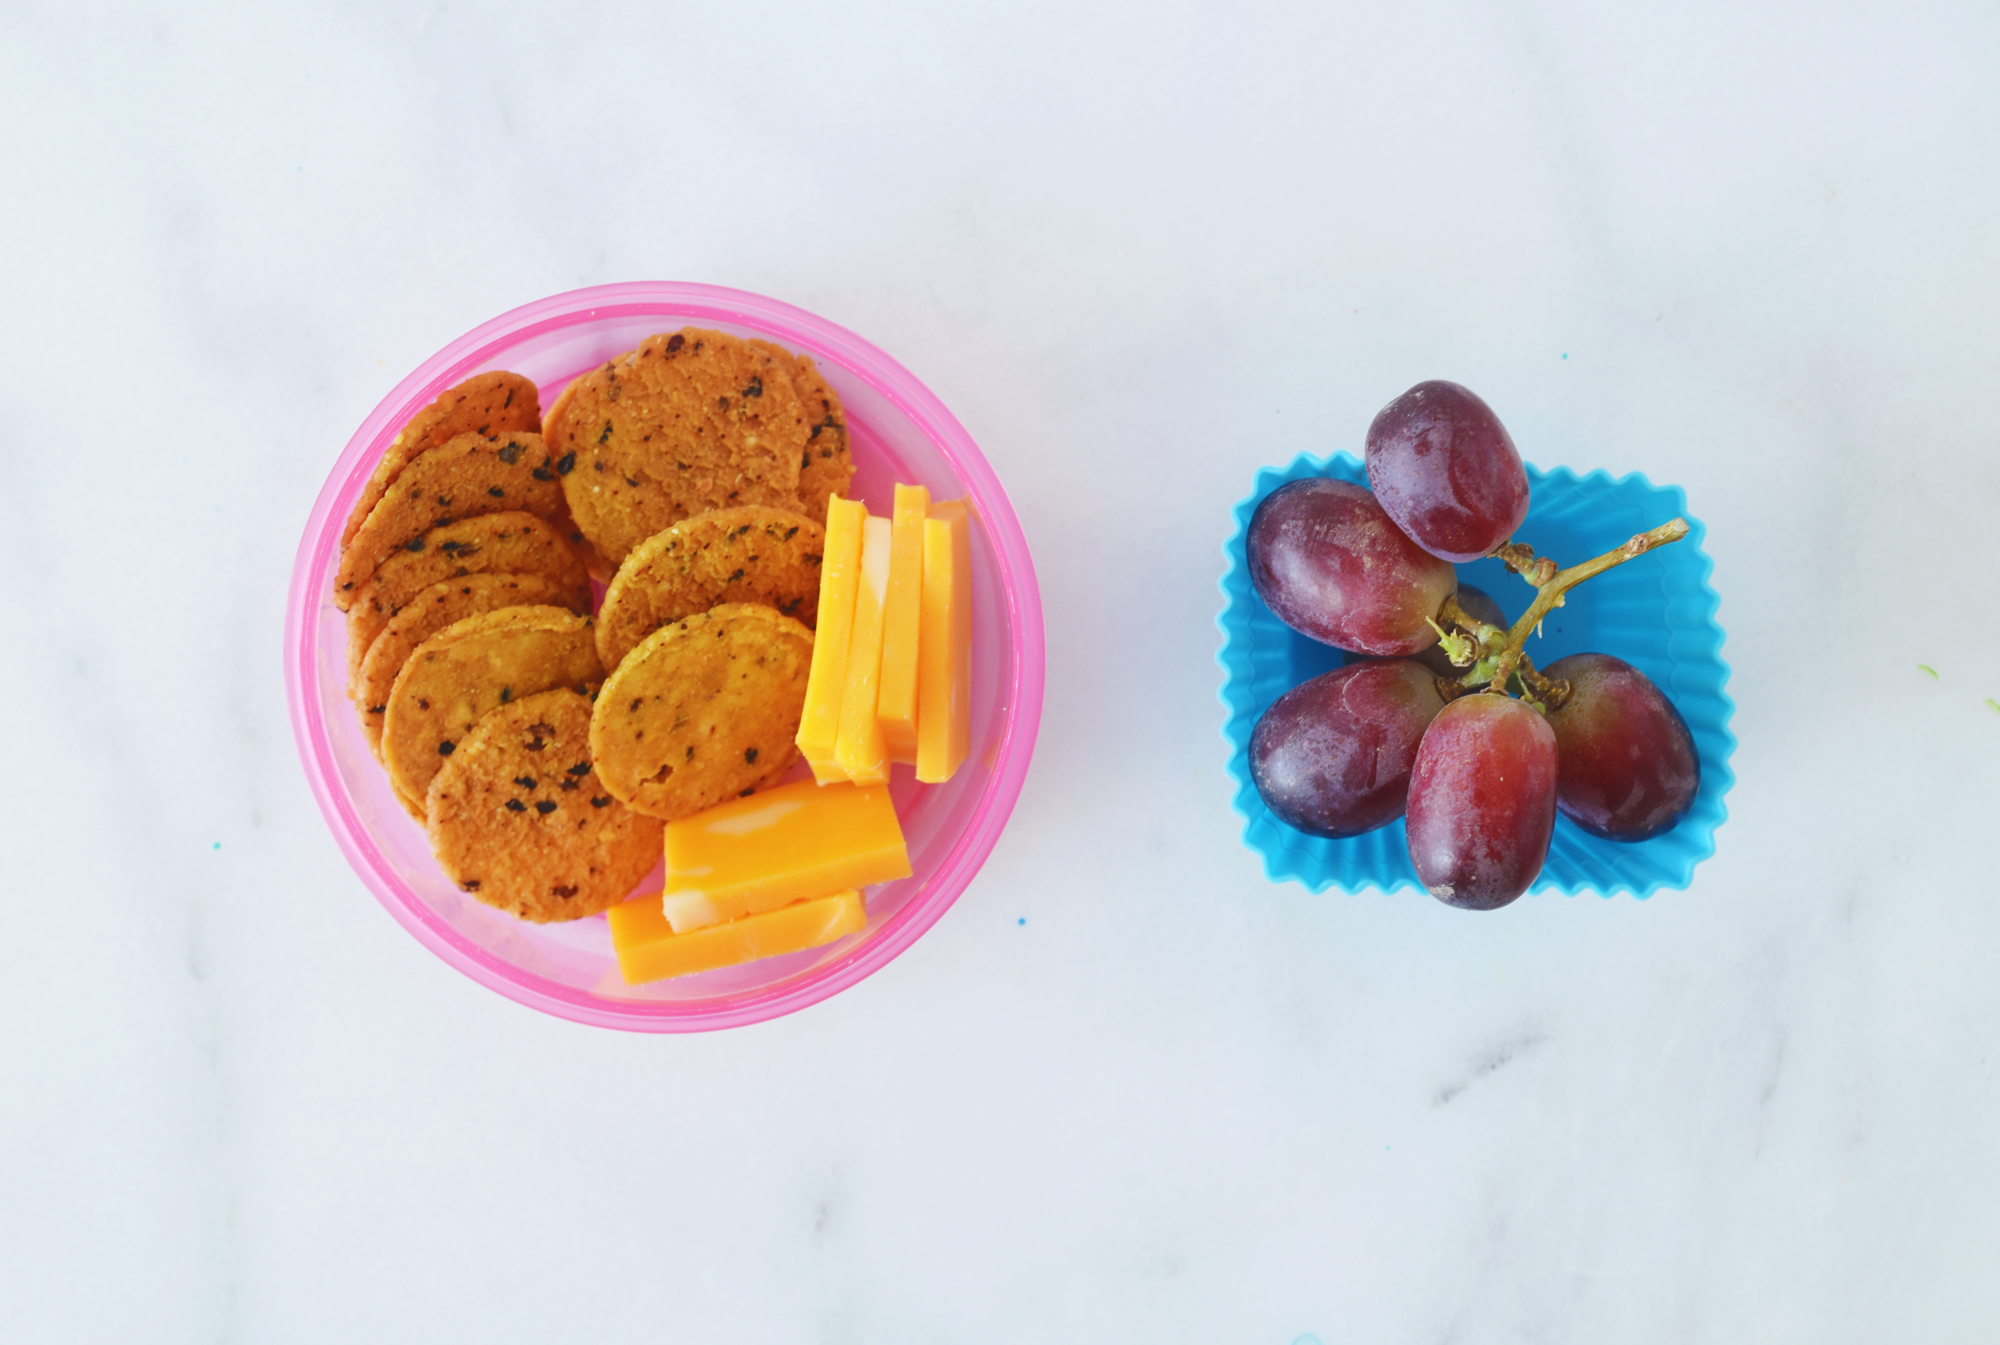 nut free school snacks 5.jpg